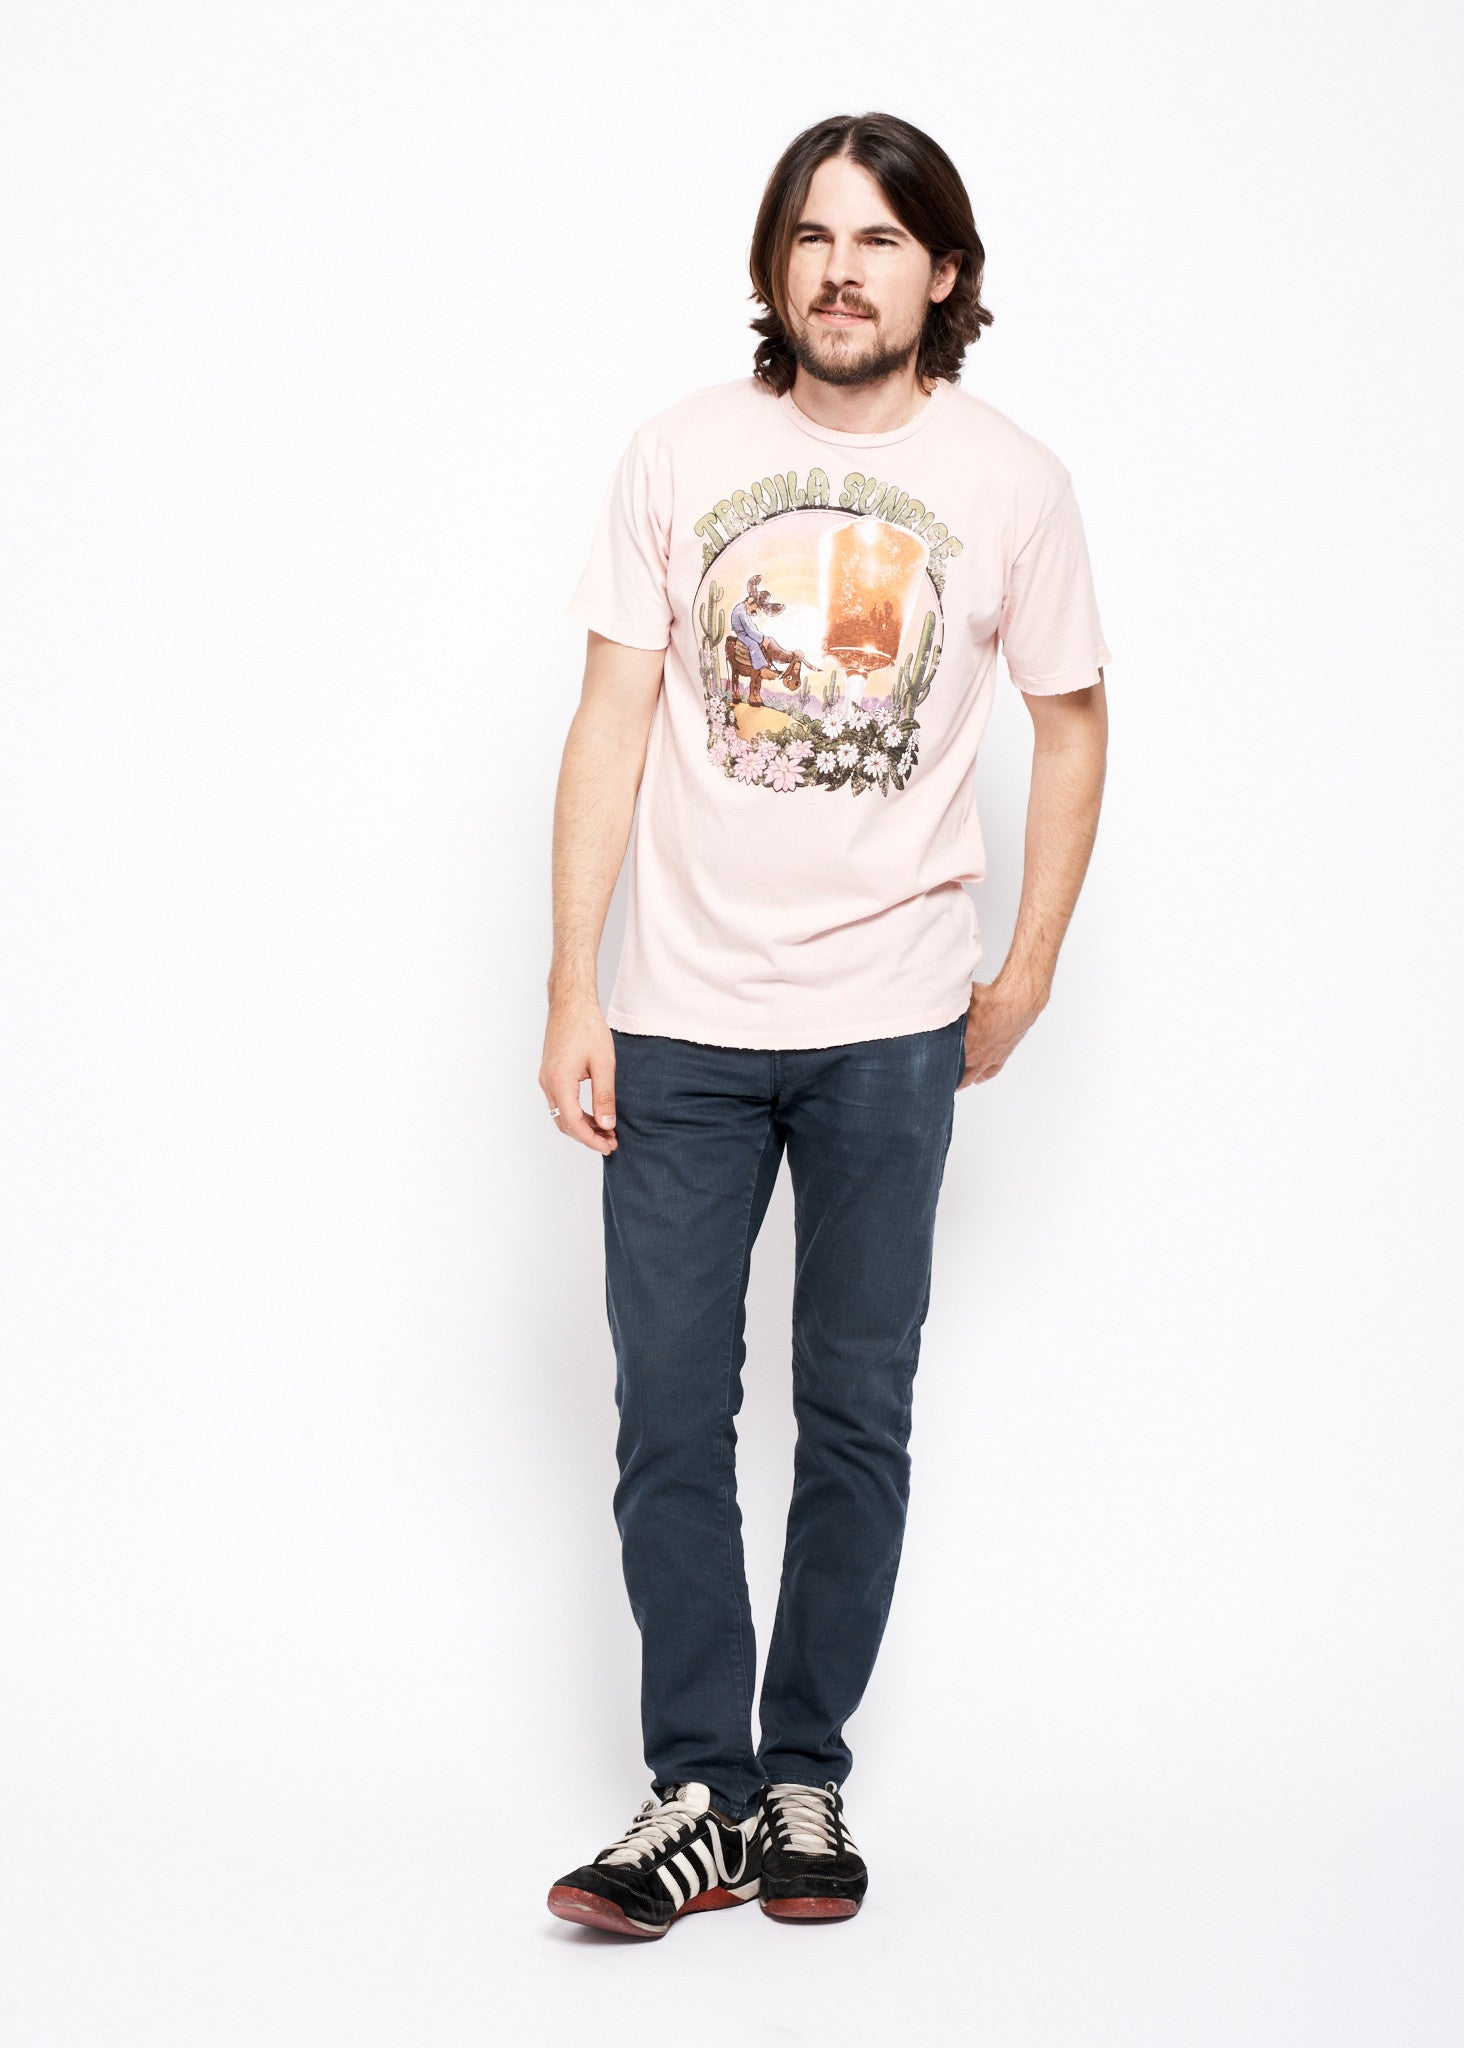 Tequila Sunrise Men's Crew - Rose Quartz